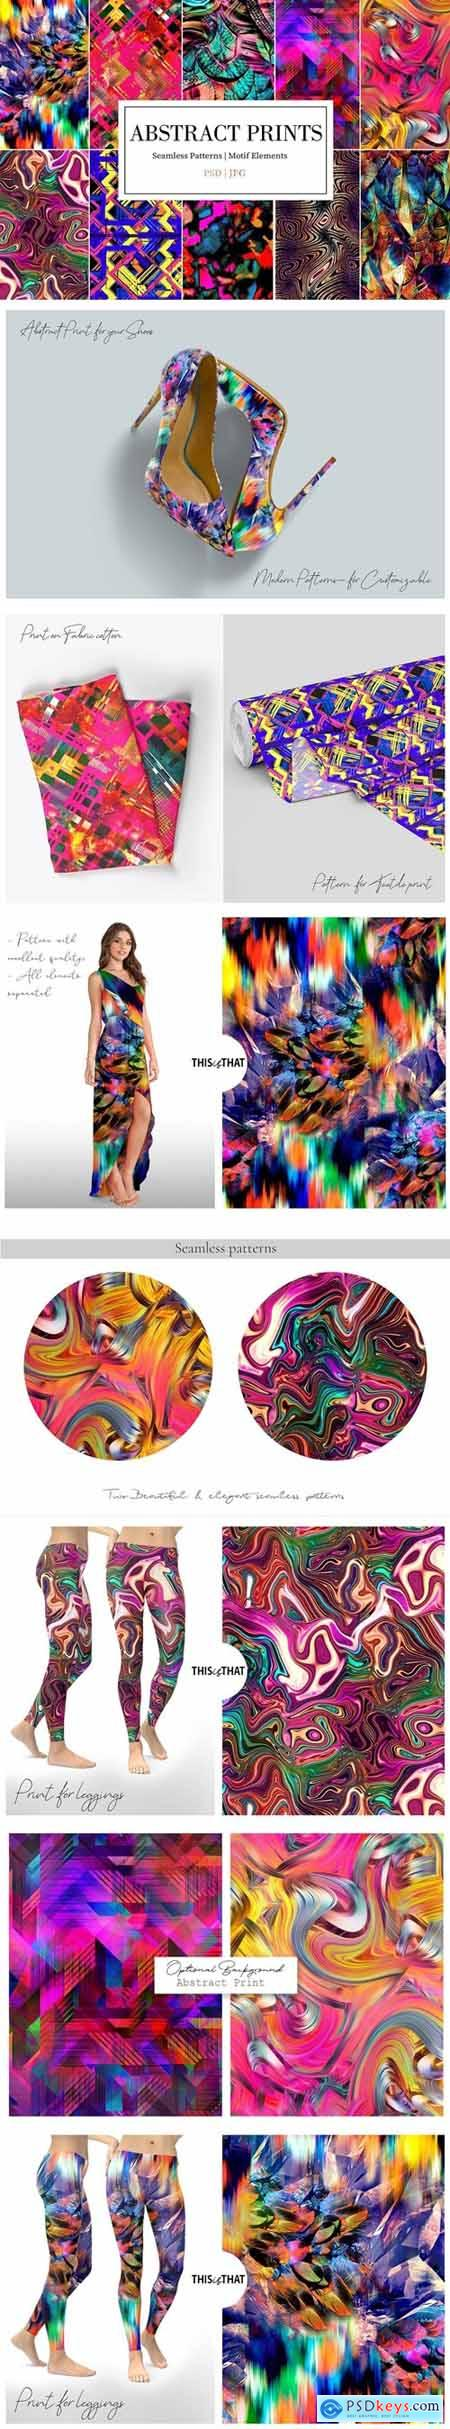 Abstract Prints 3499745